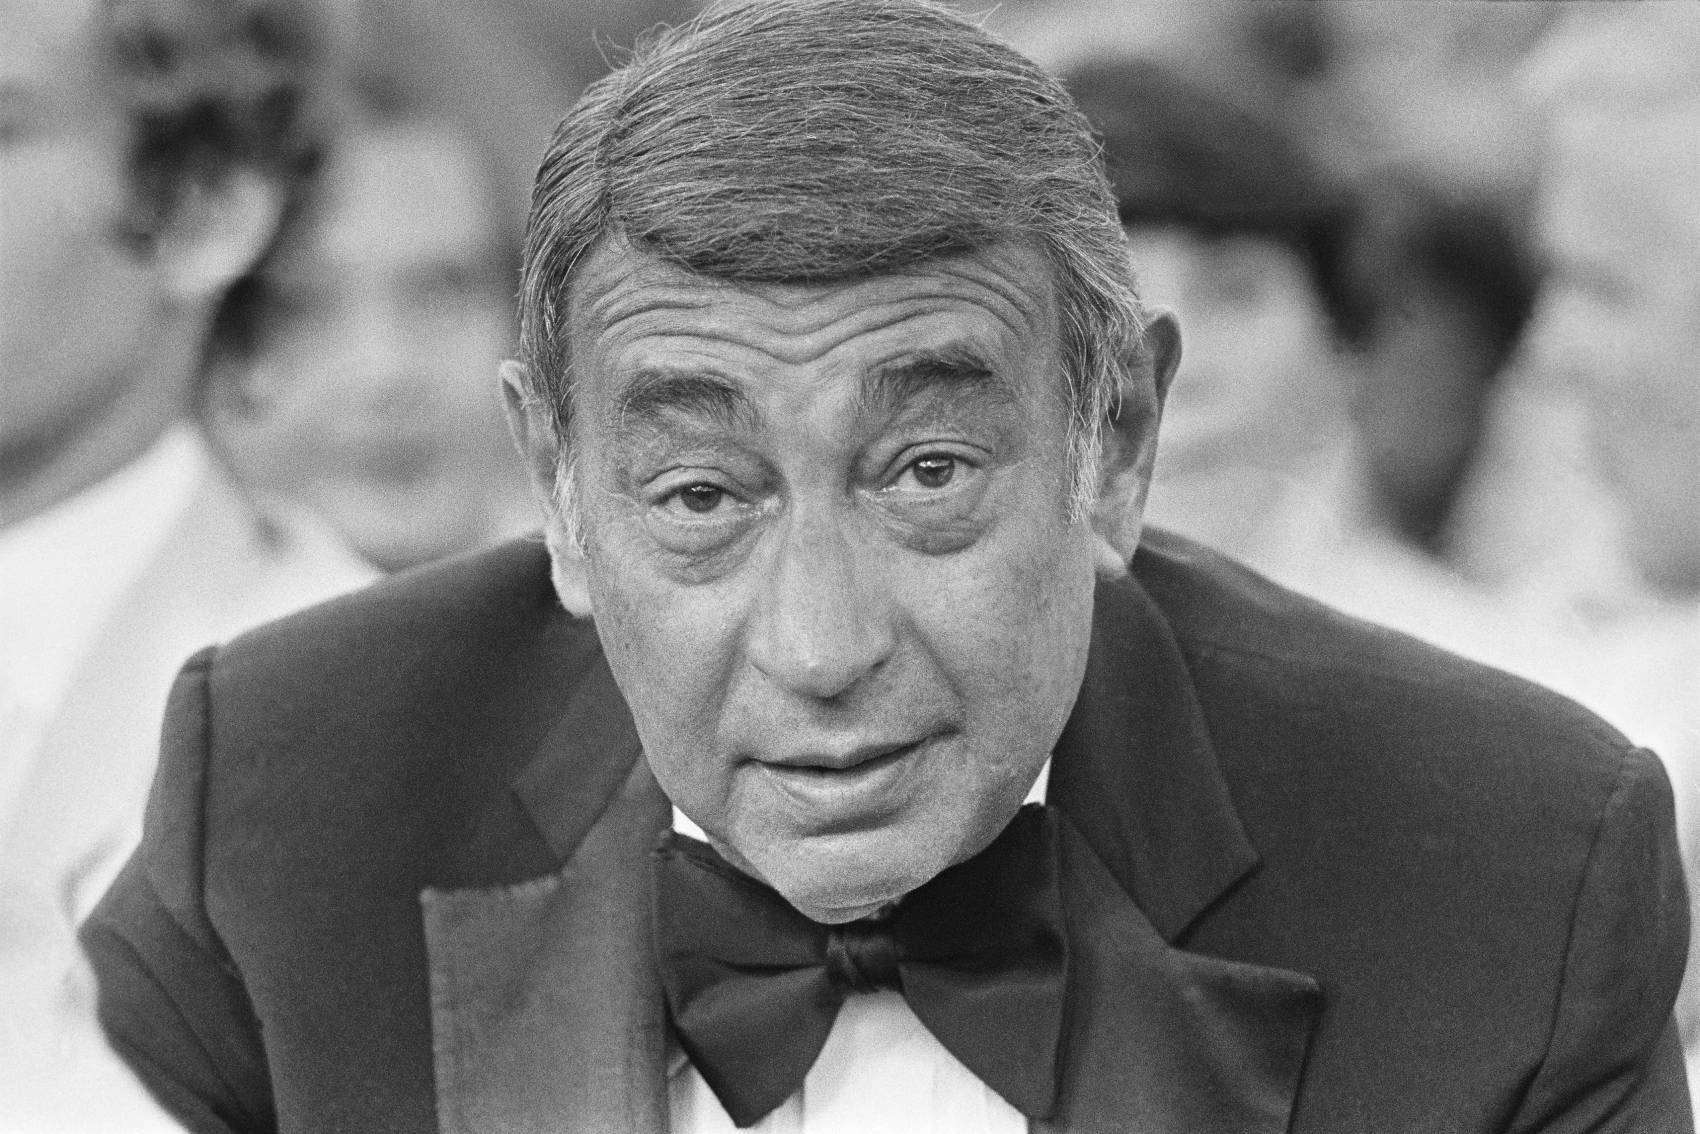 Howard Cosell was an iconic and trendsetting sportscaster. Cosell's controversial book destroyed his reputation, though.